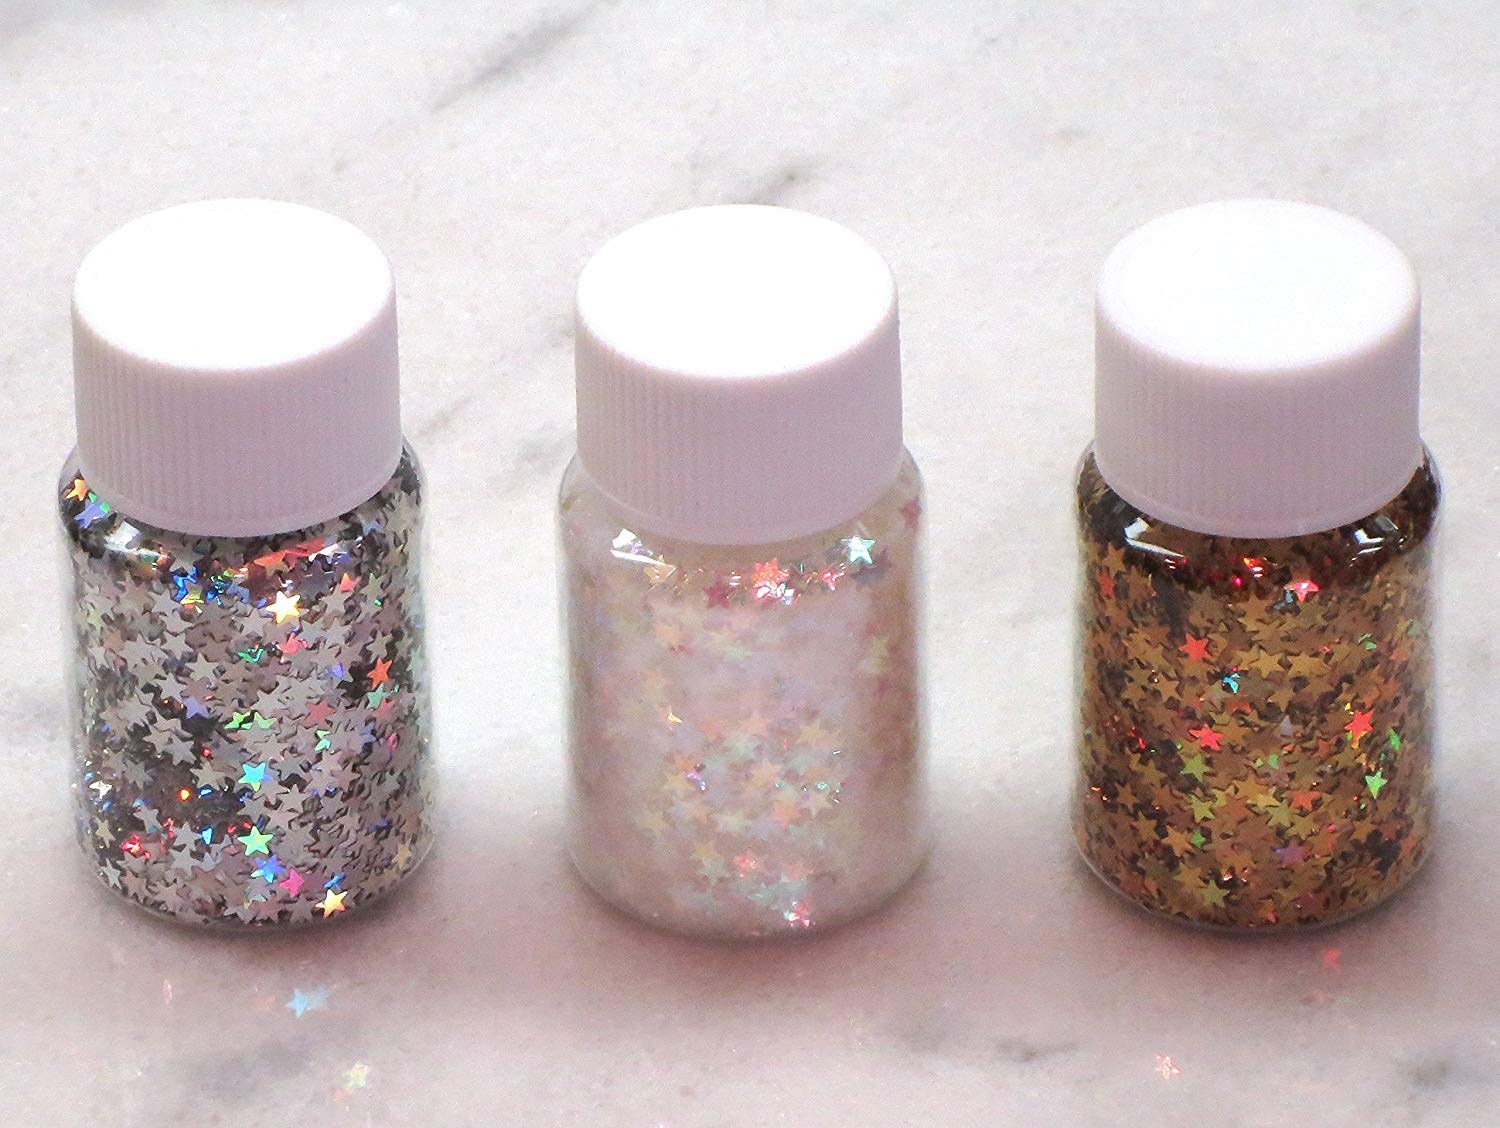 Three Bottles of Star Glitter | Solvent Resistant | Polyester Glitter | Holographic | Silver | Gold | Iridescent | Rainbow | Nail Art | Slime Art | Resin Jewelry | Tumbler | Crafts | Birthday Gift